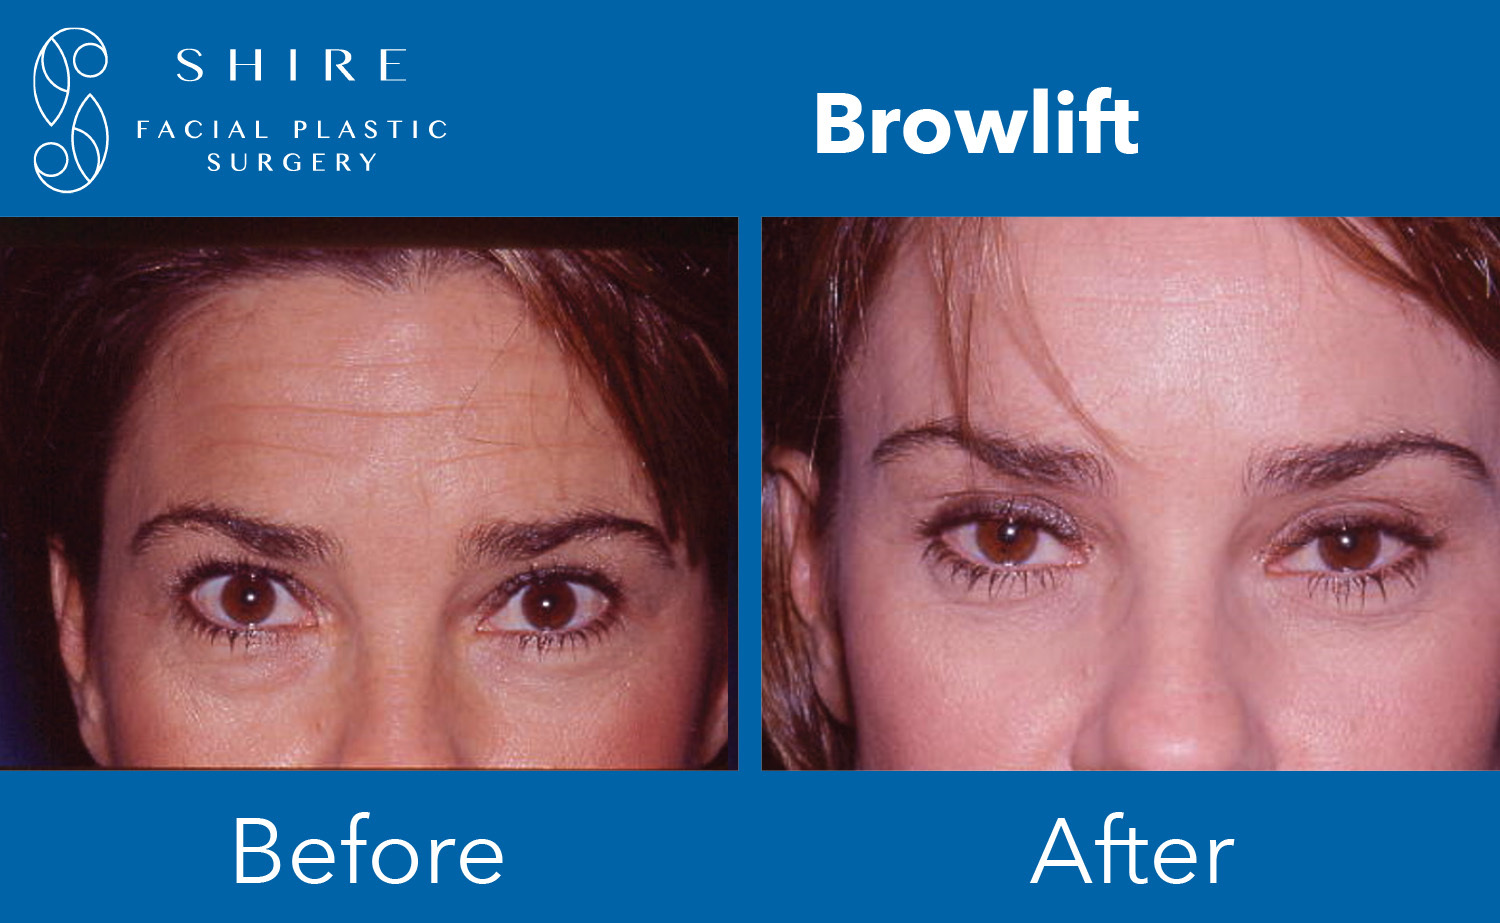 Browlift-Before-After-Group-4